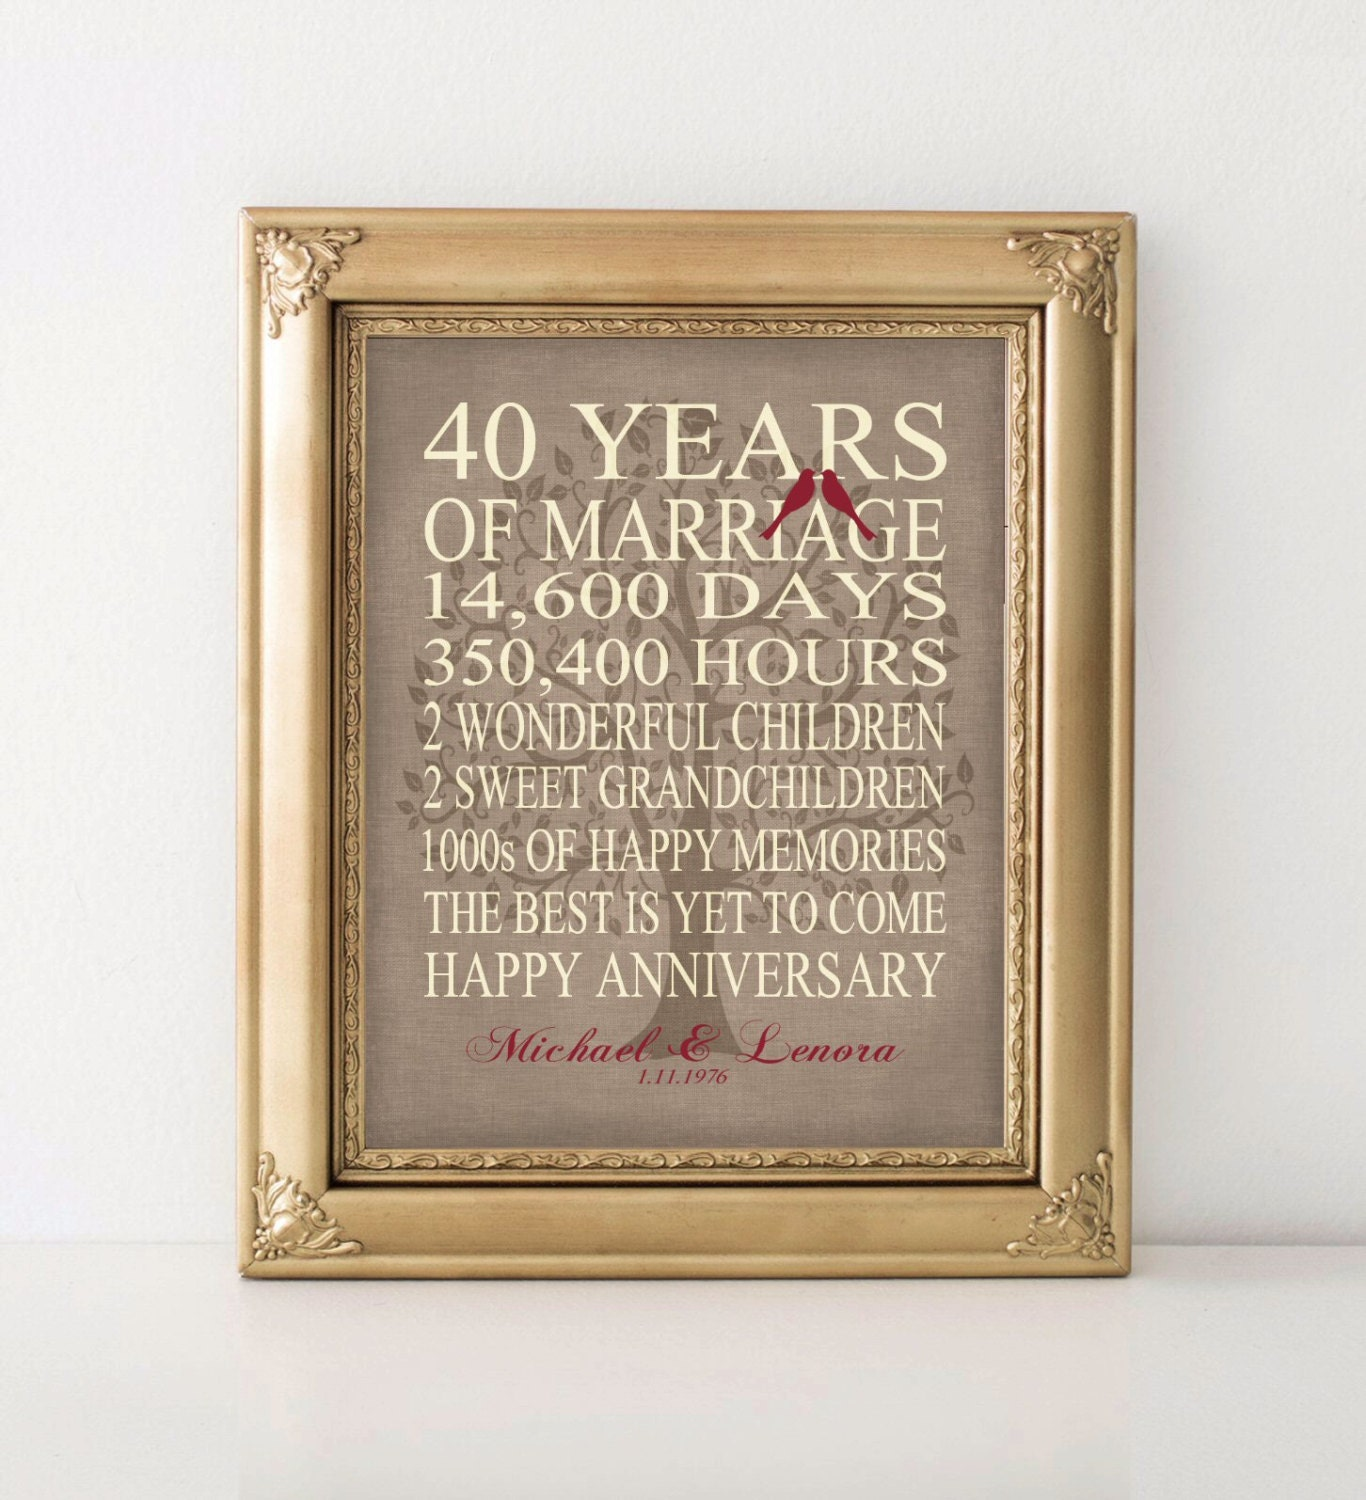 40 Year Wedding Anniversary Gift Ideas: Wedding Anniversary Gift 40th Anniversary Gift Personalized